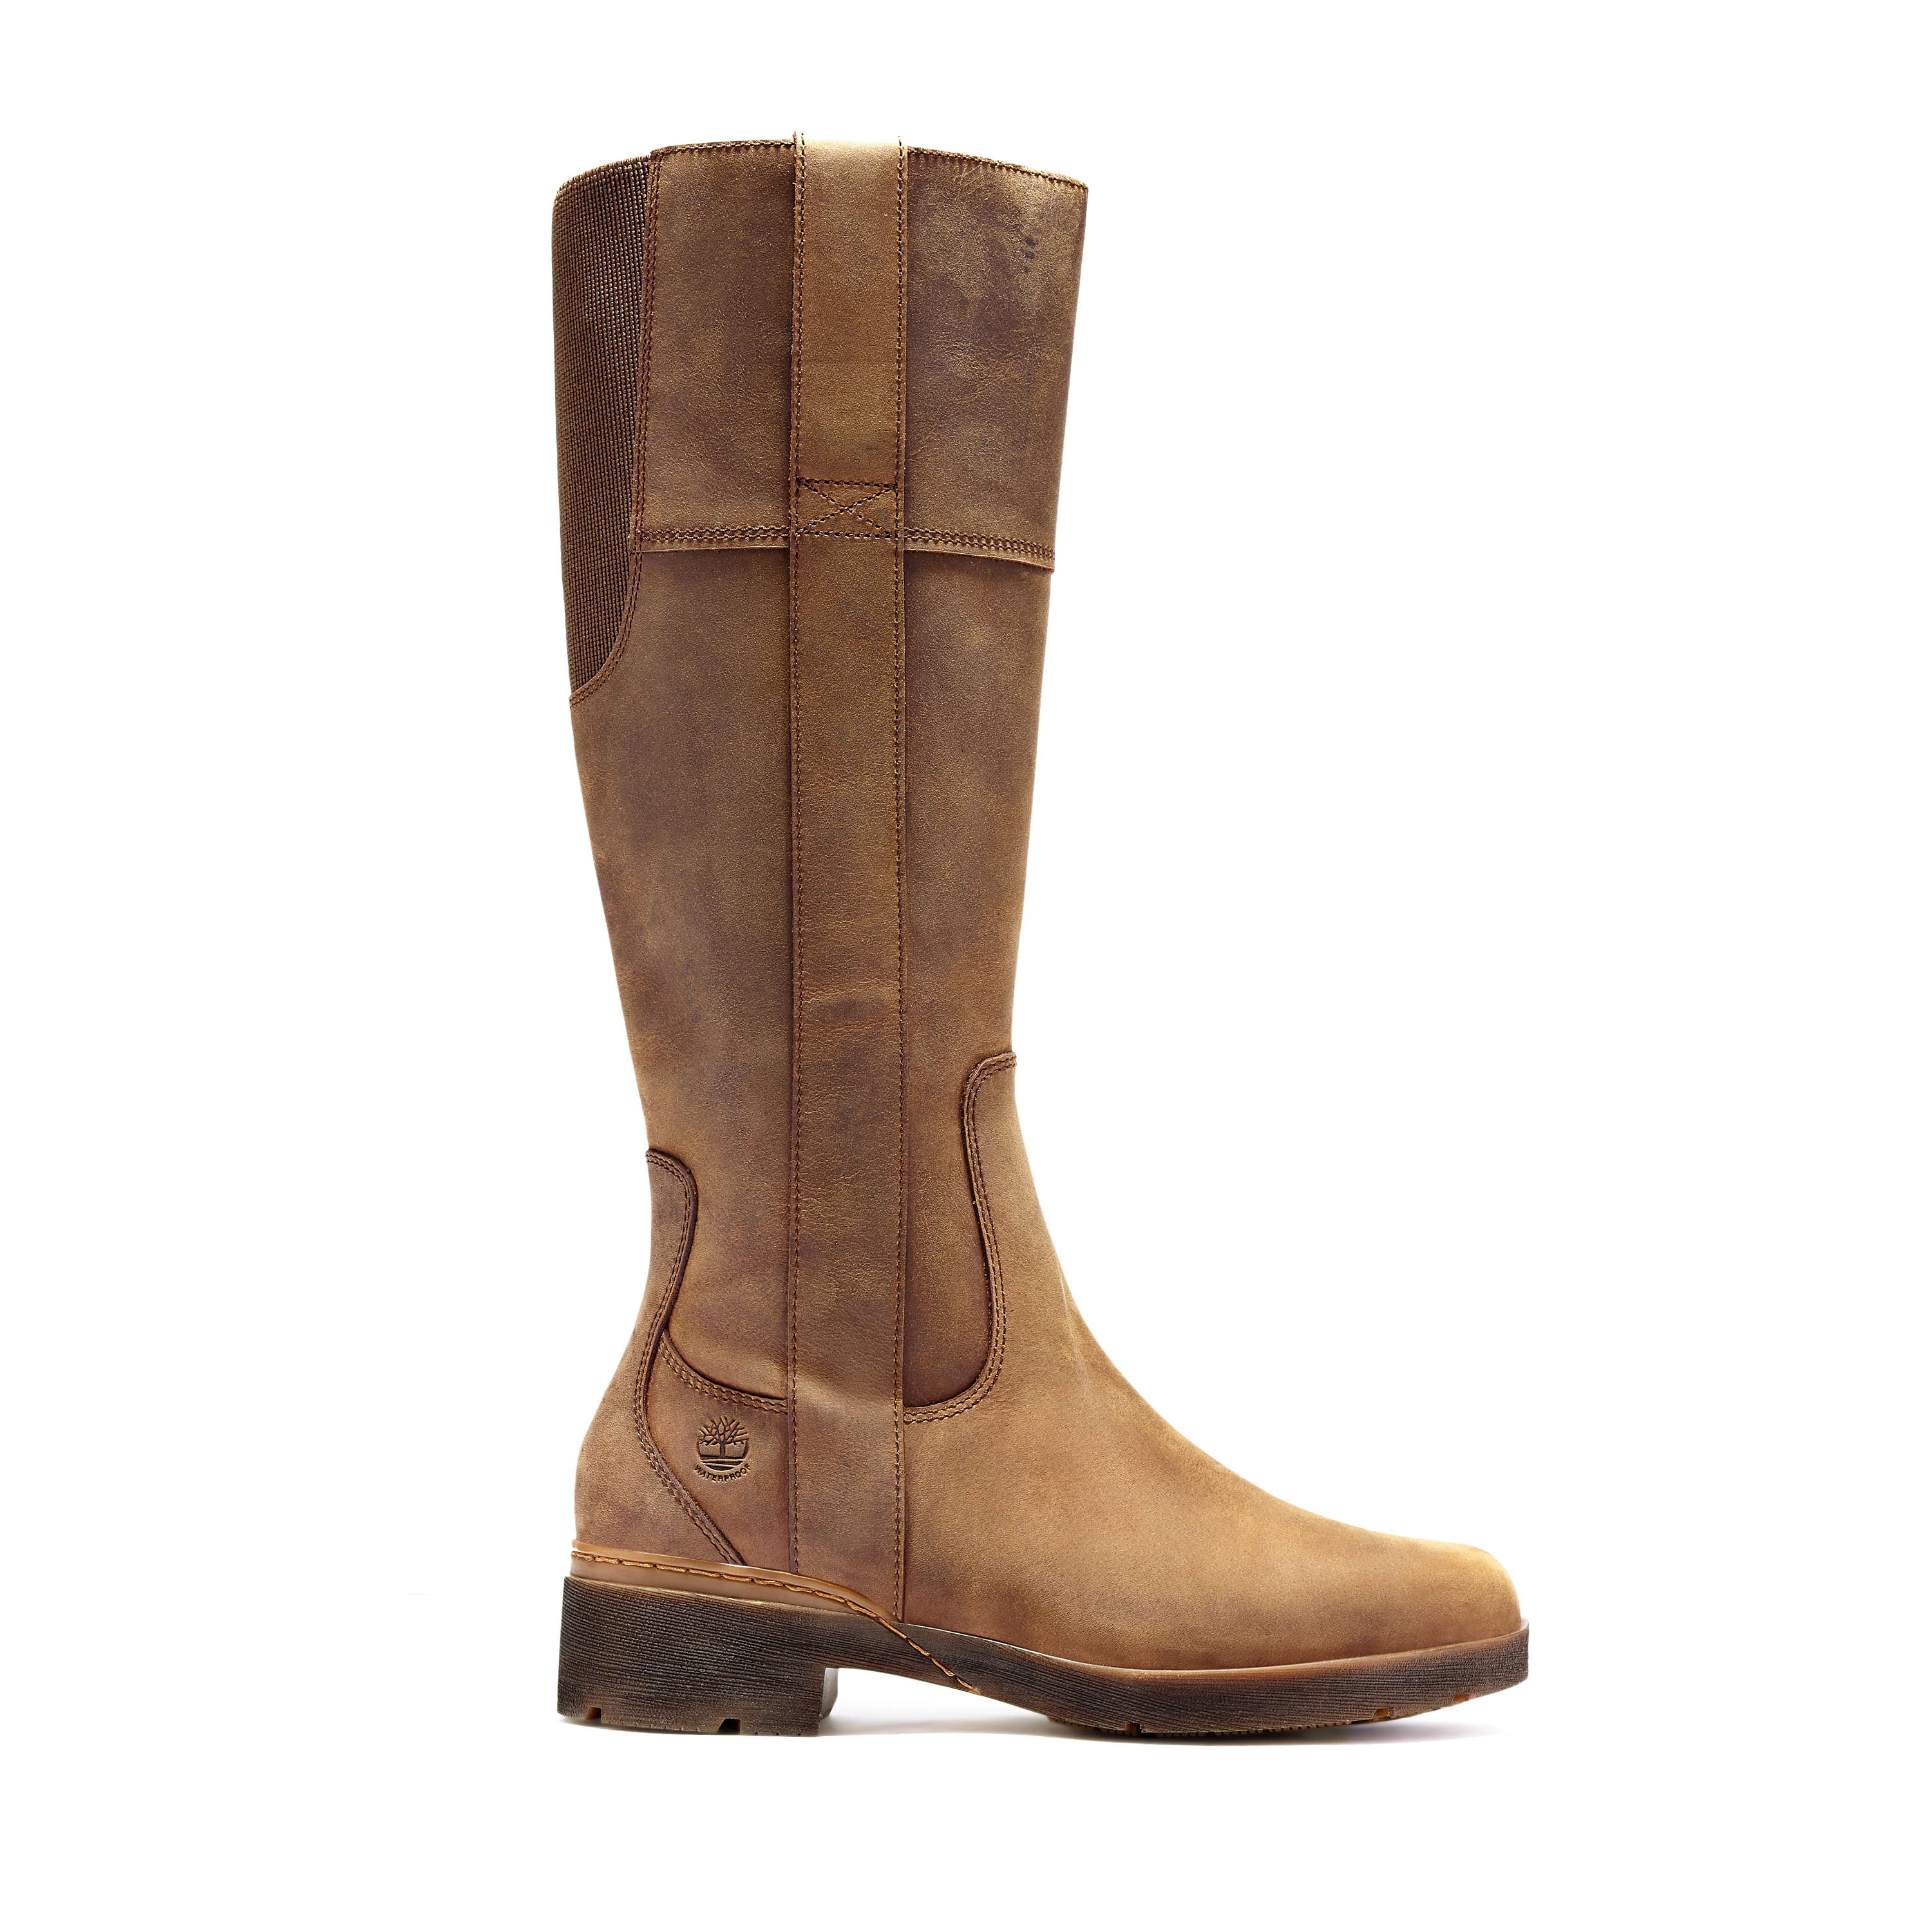 TIMBERLAND PVP 250EUROS_A2FXBF13-hero_BETTER_LEATHER